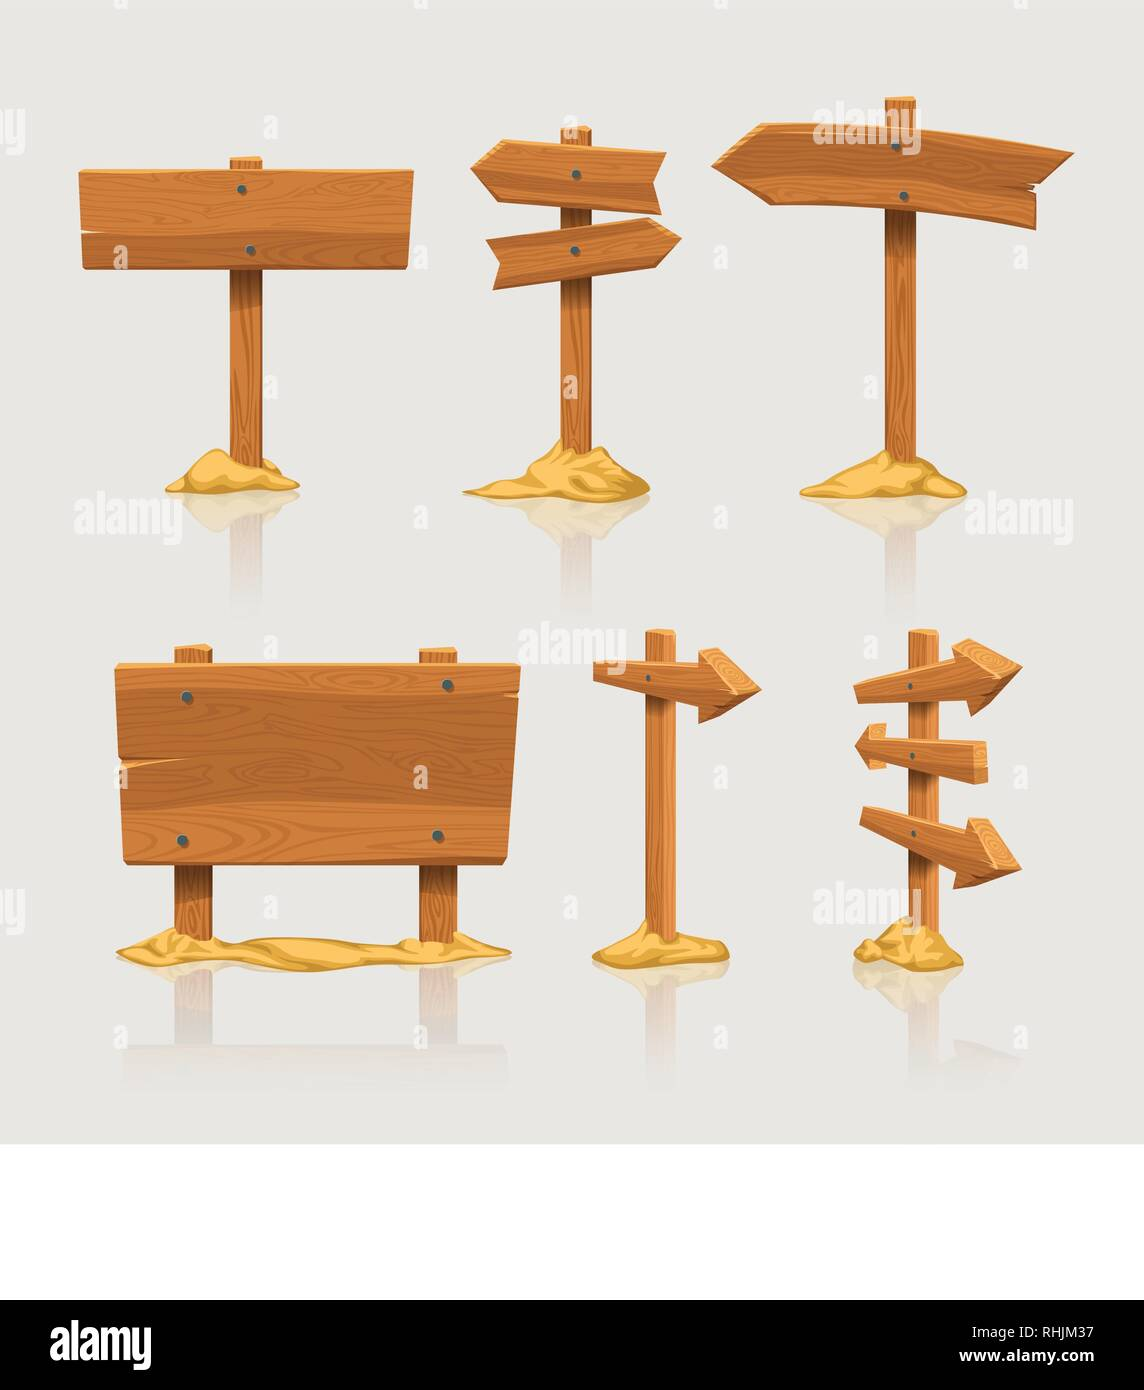 wooden directional signs set